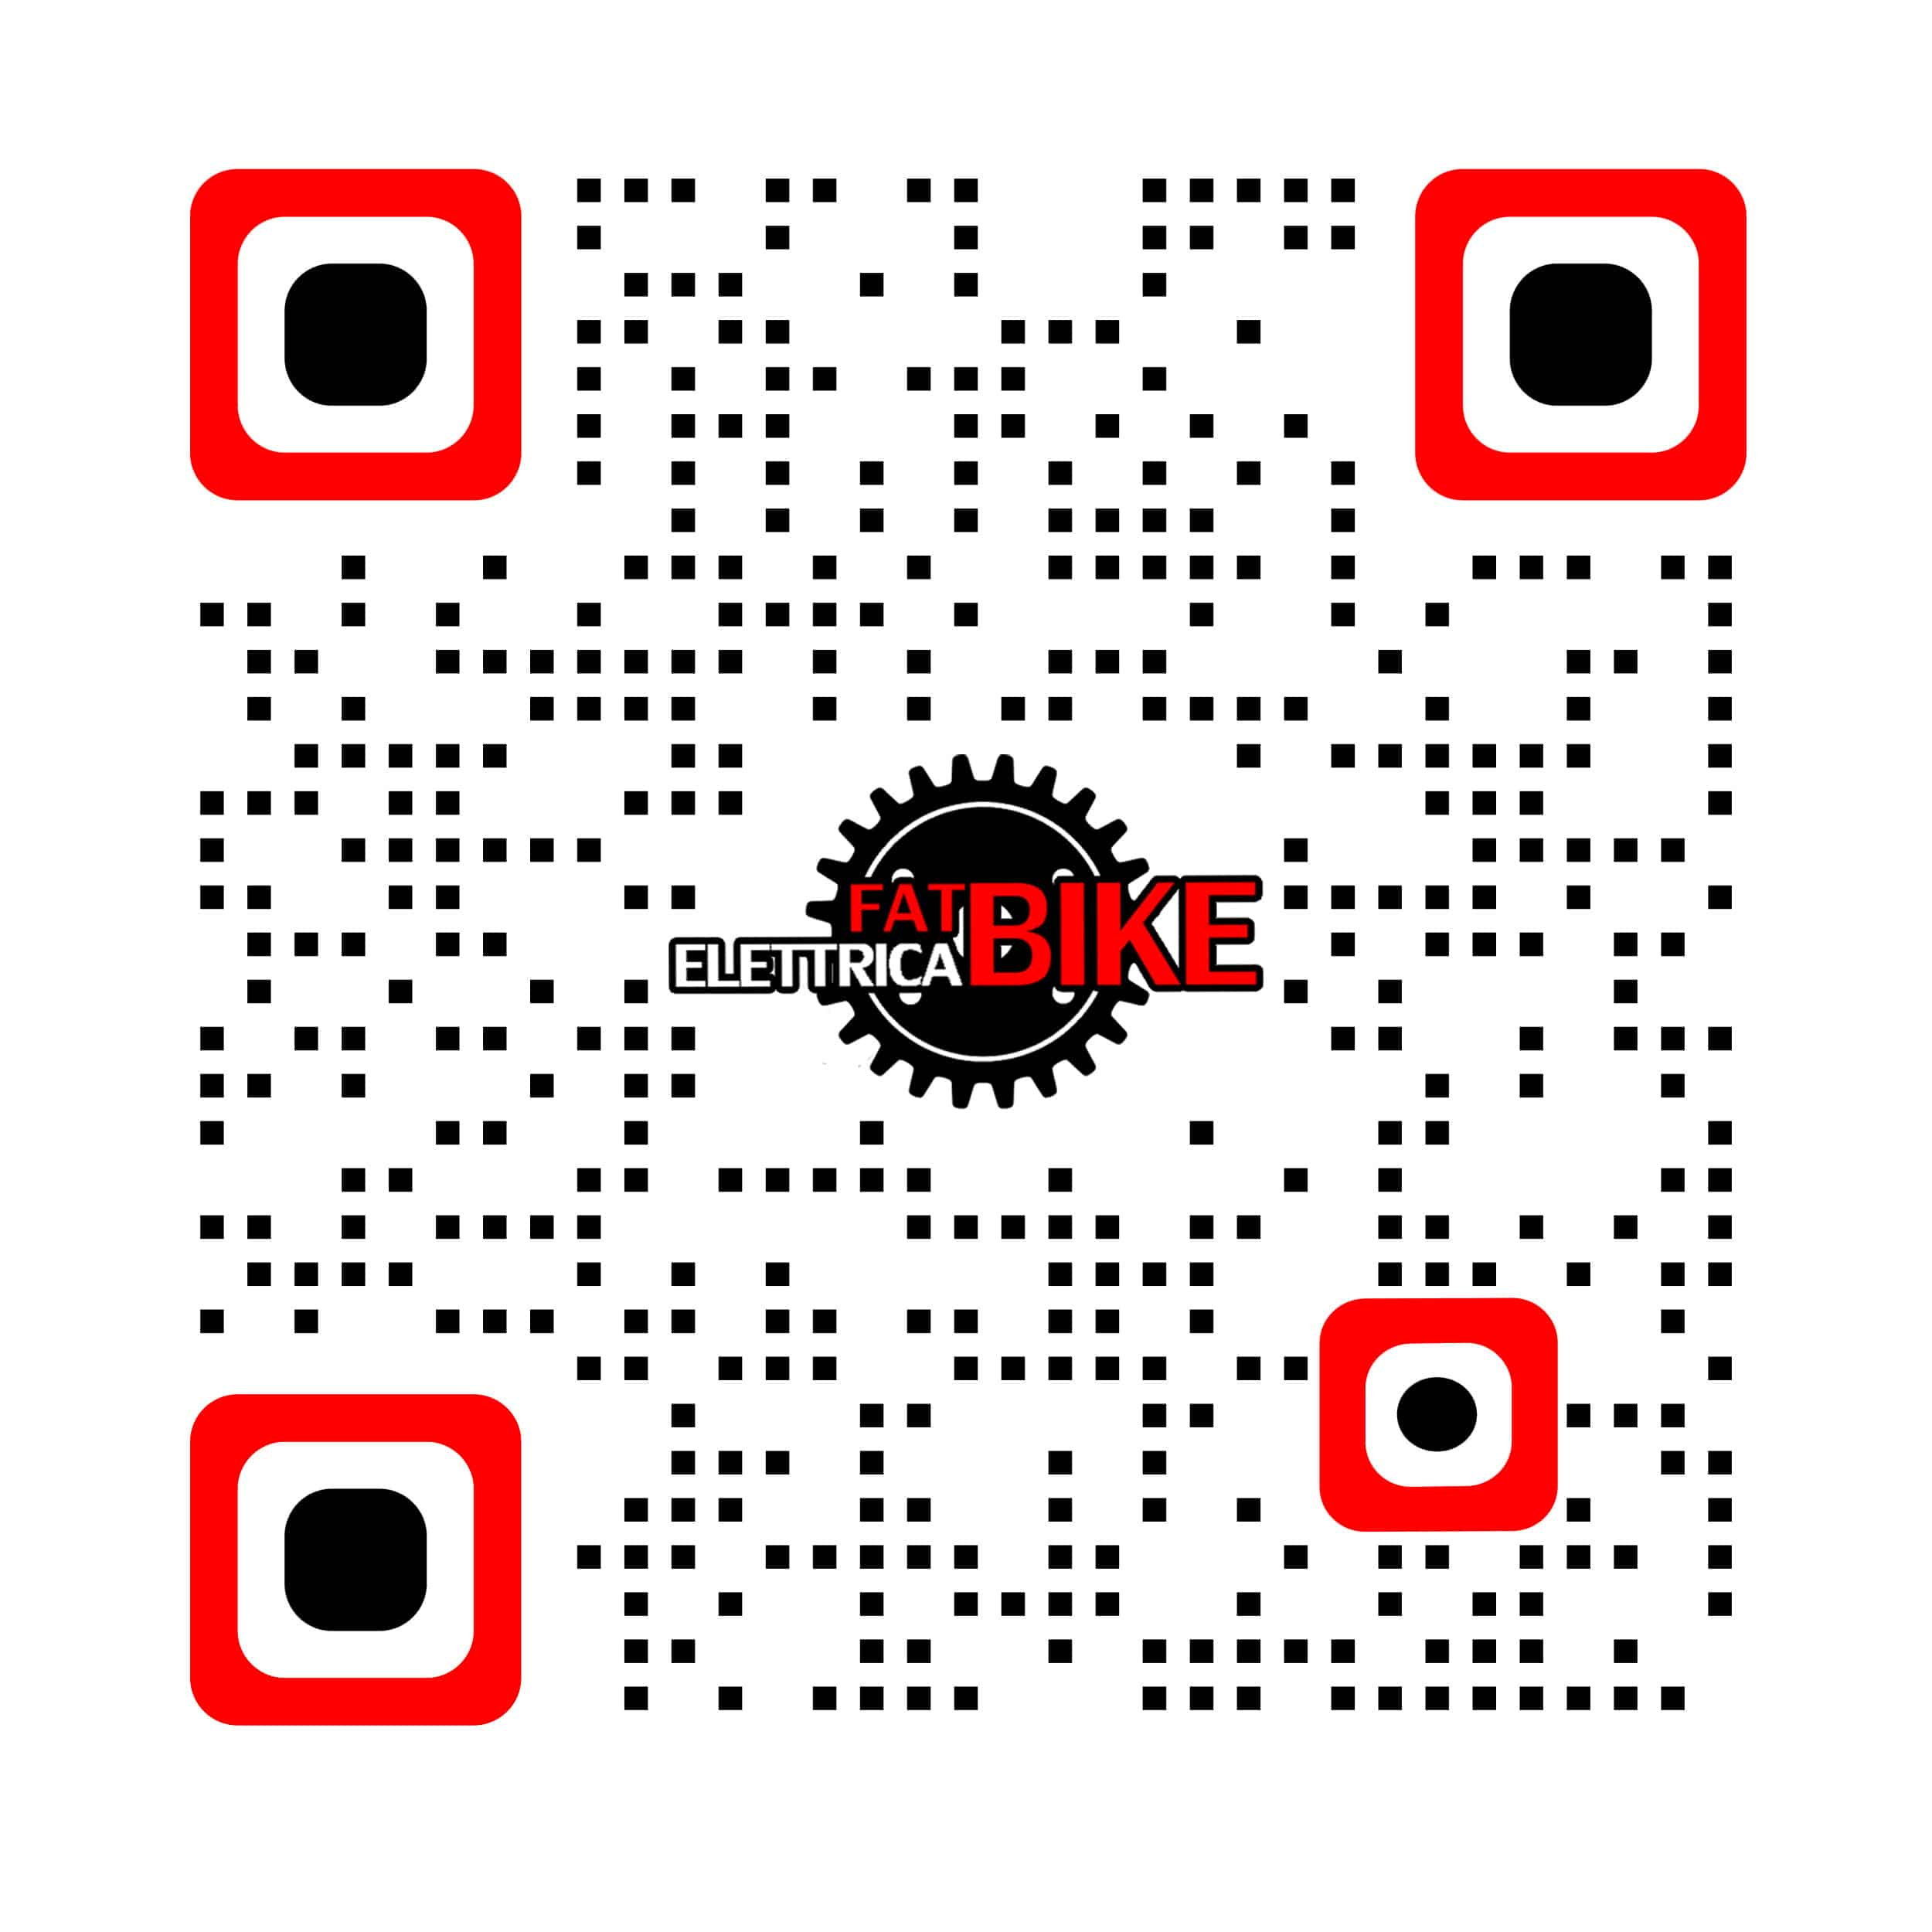 QR Code FatBike-Elettrica.it The Quick Response Code.